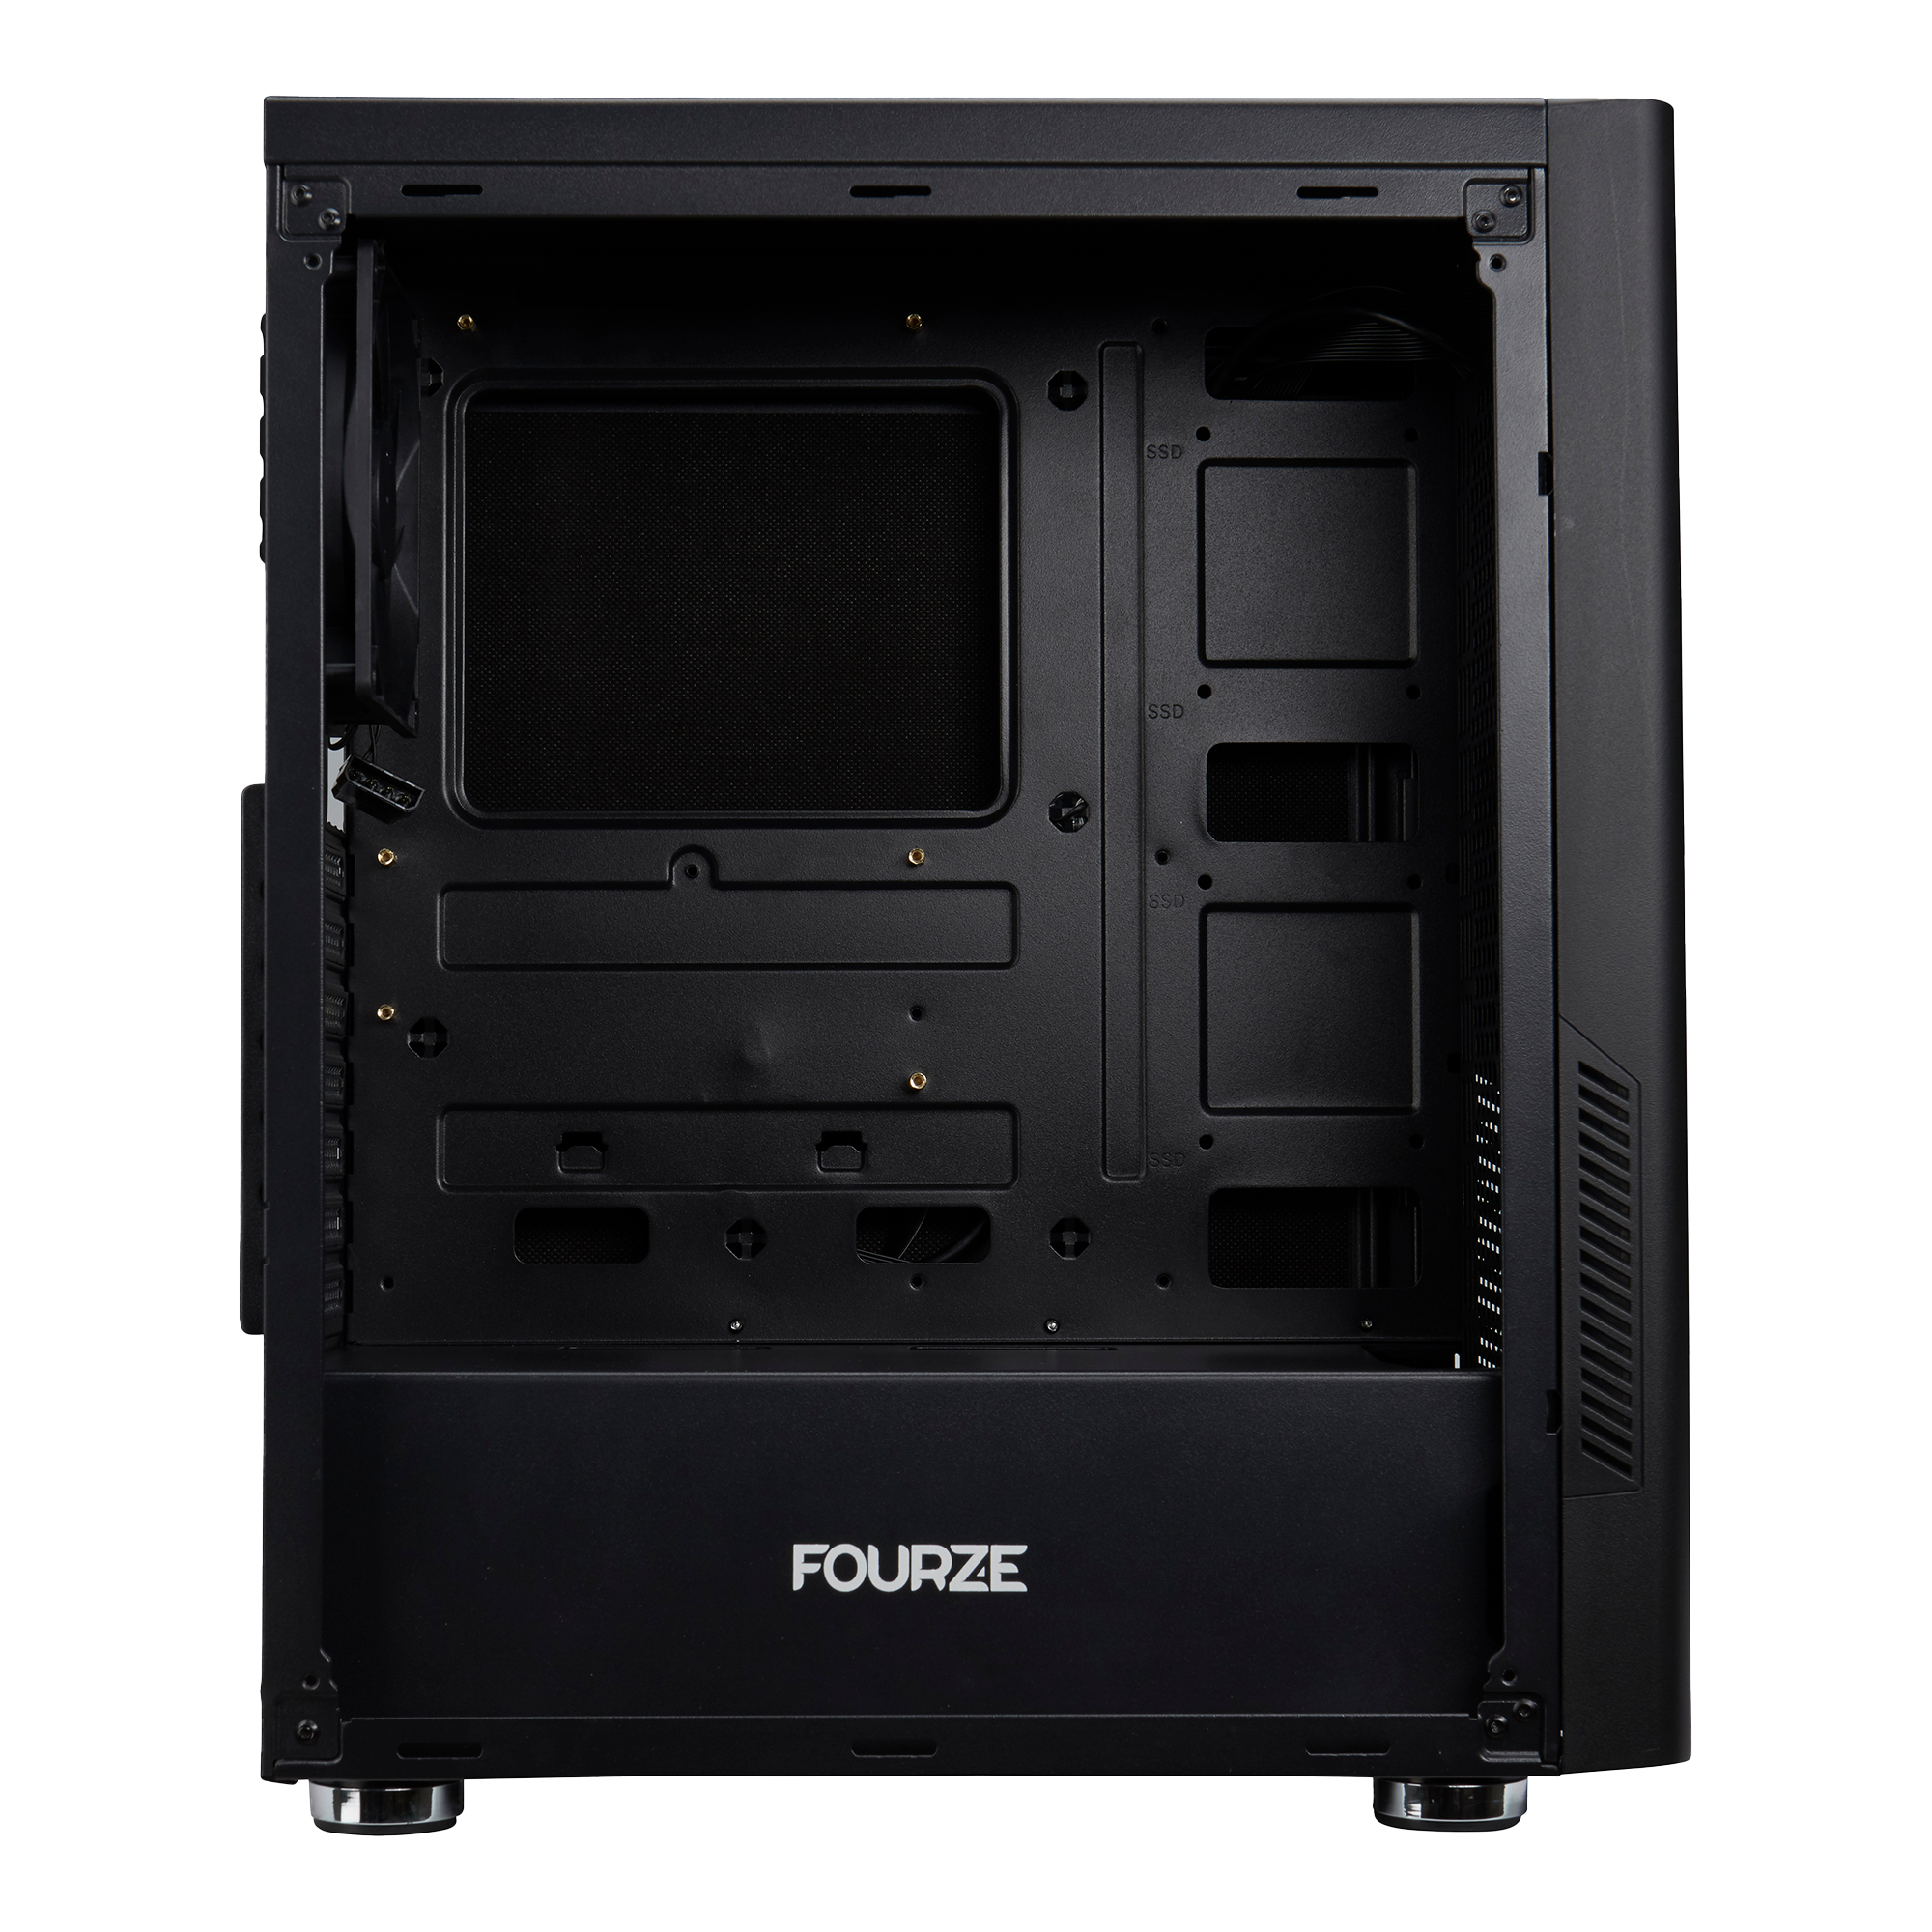 FOURZE T100 Silent Gaming Case. Seen from the side, shows the inside of the gaming case.